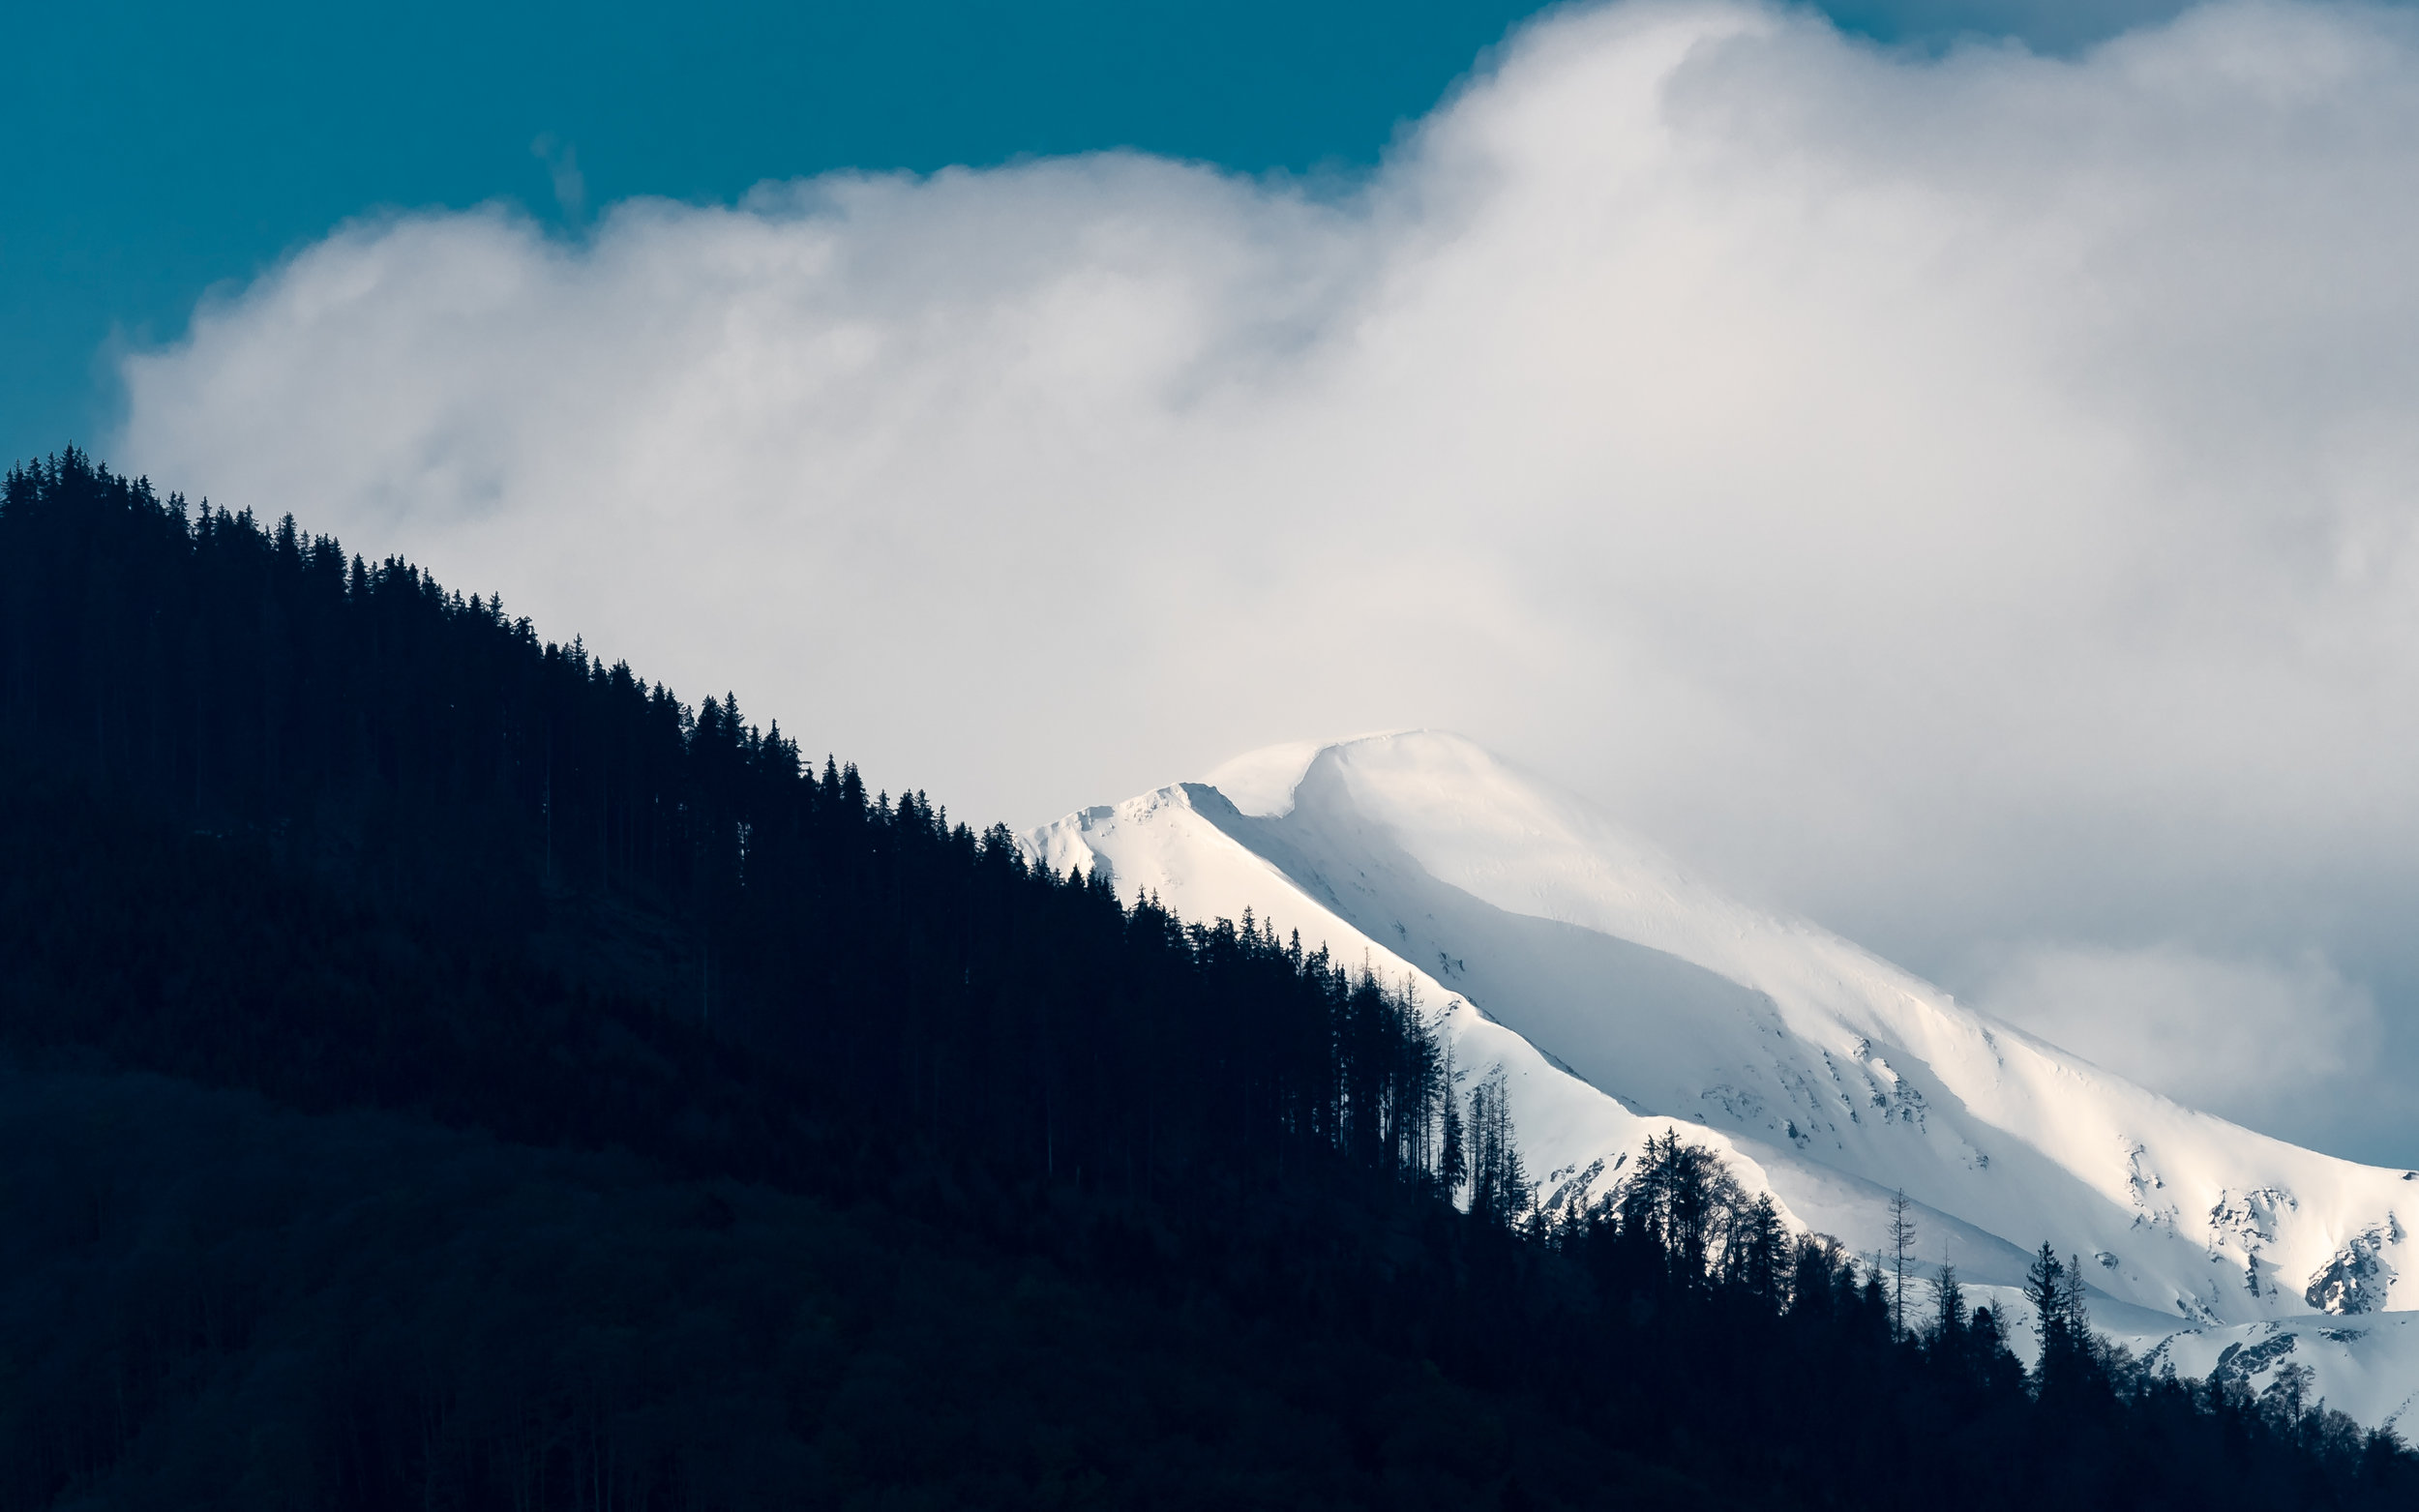 Snowy peaks of the Carpathians in the clouds